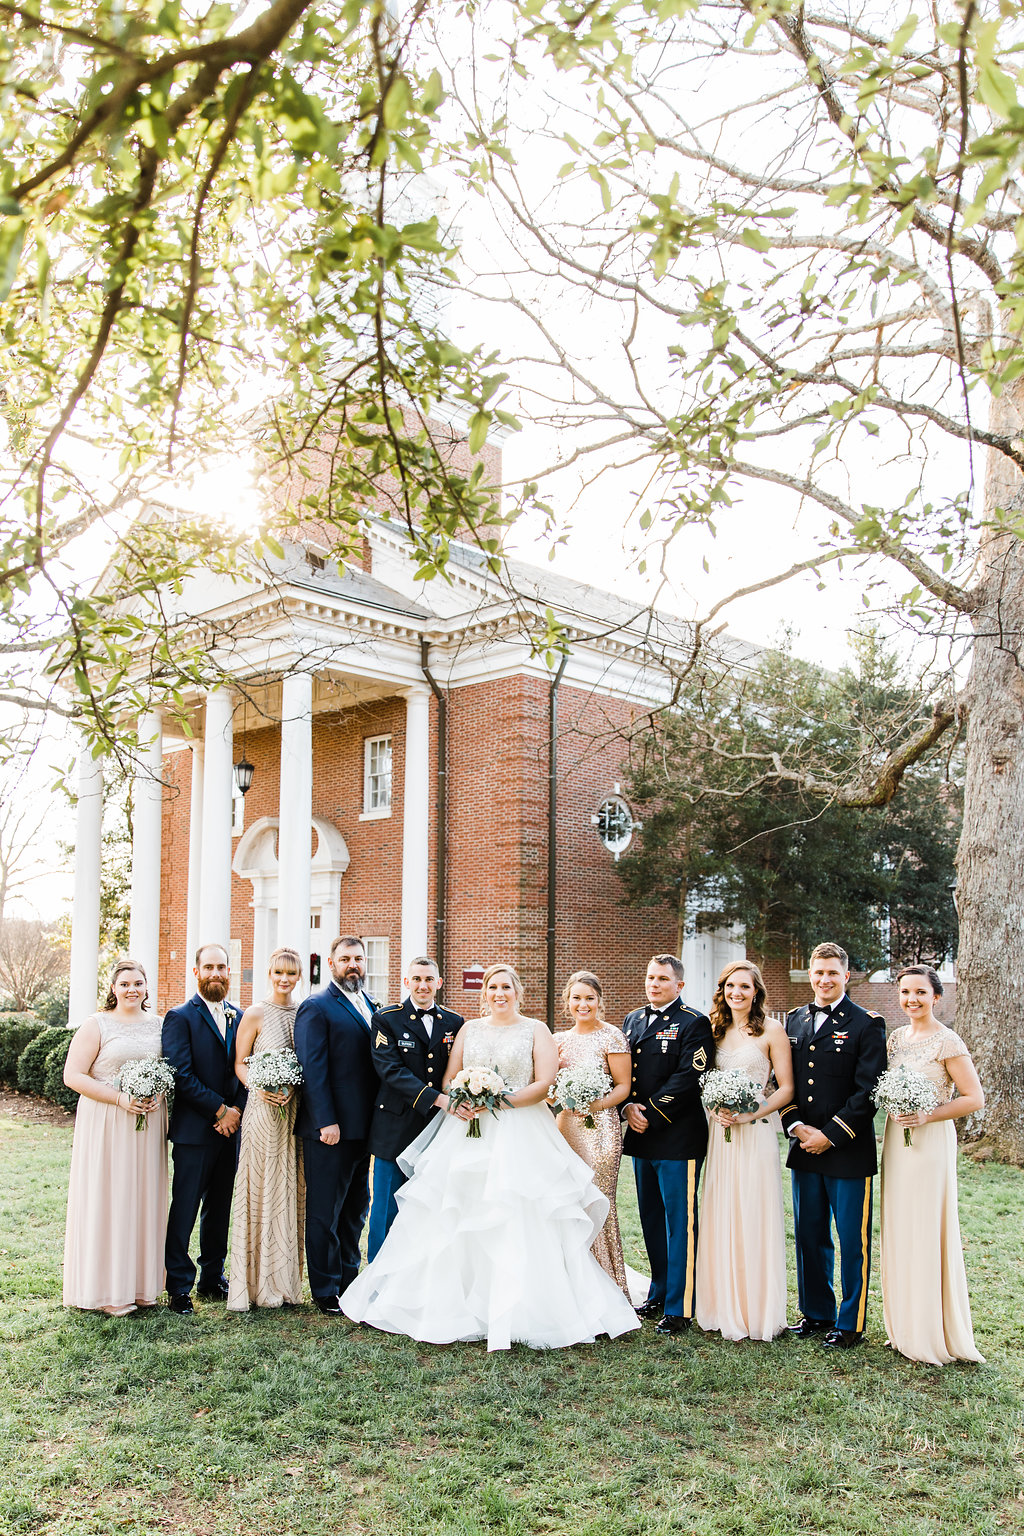 Navy + White Military Wedding - Raleigh, North Carolina Wedding Venue The Royal — The Overwhelmed Bride Wedding Blog